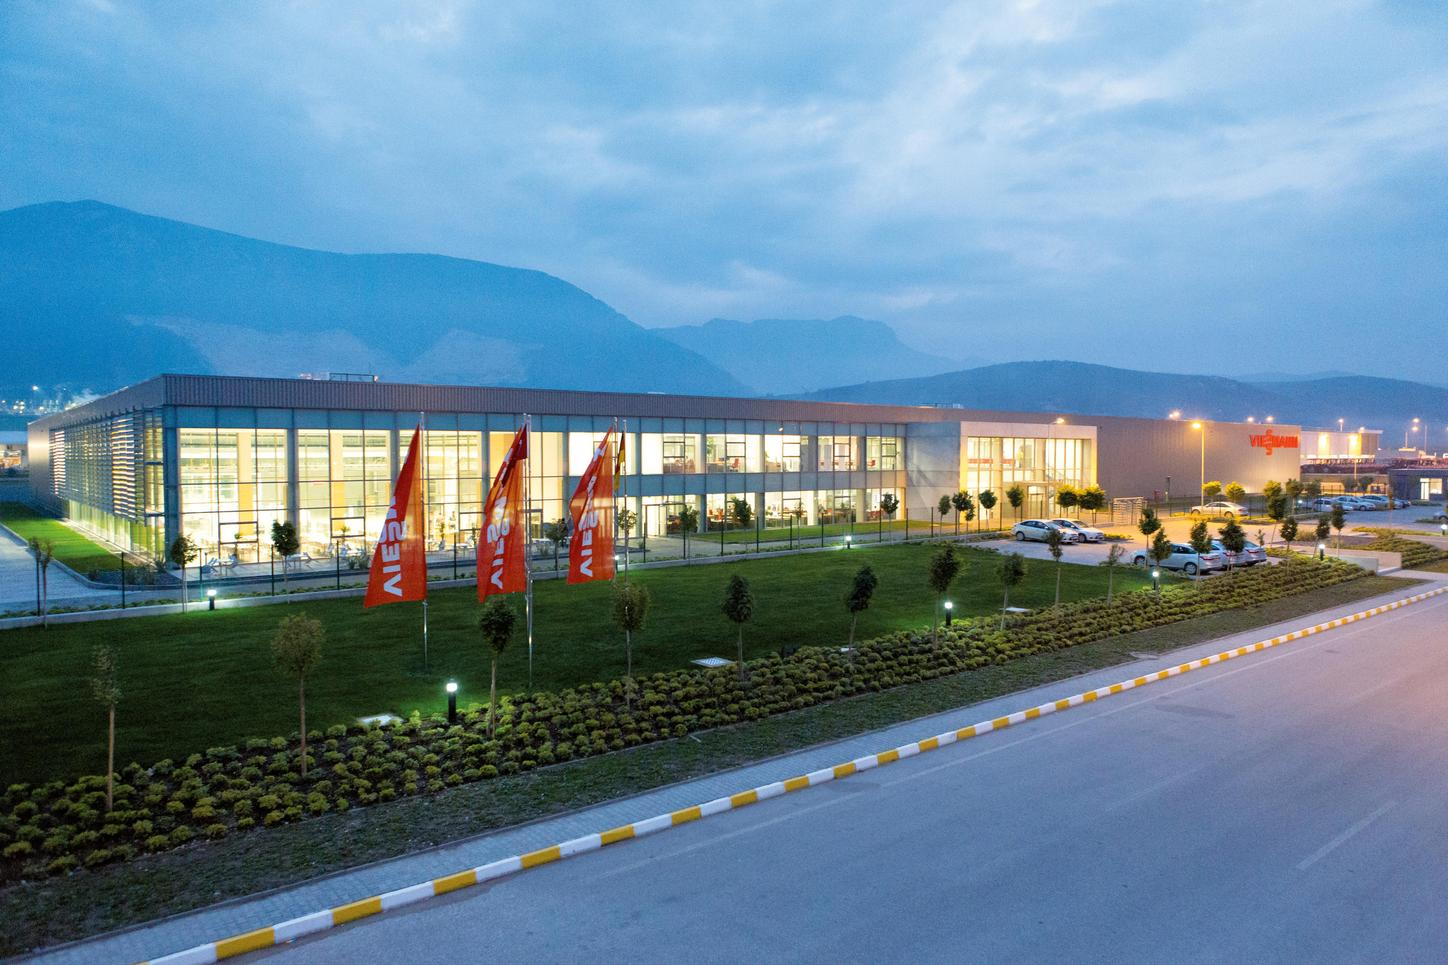 The image shows the Viessmann production facility in Manisa.